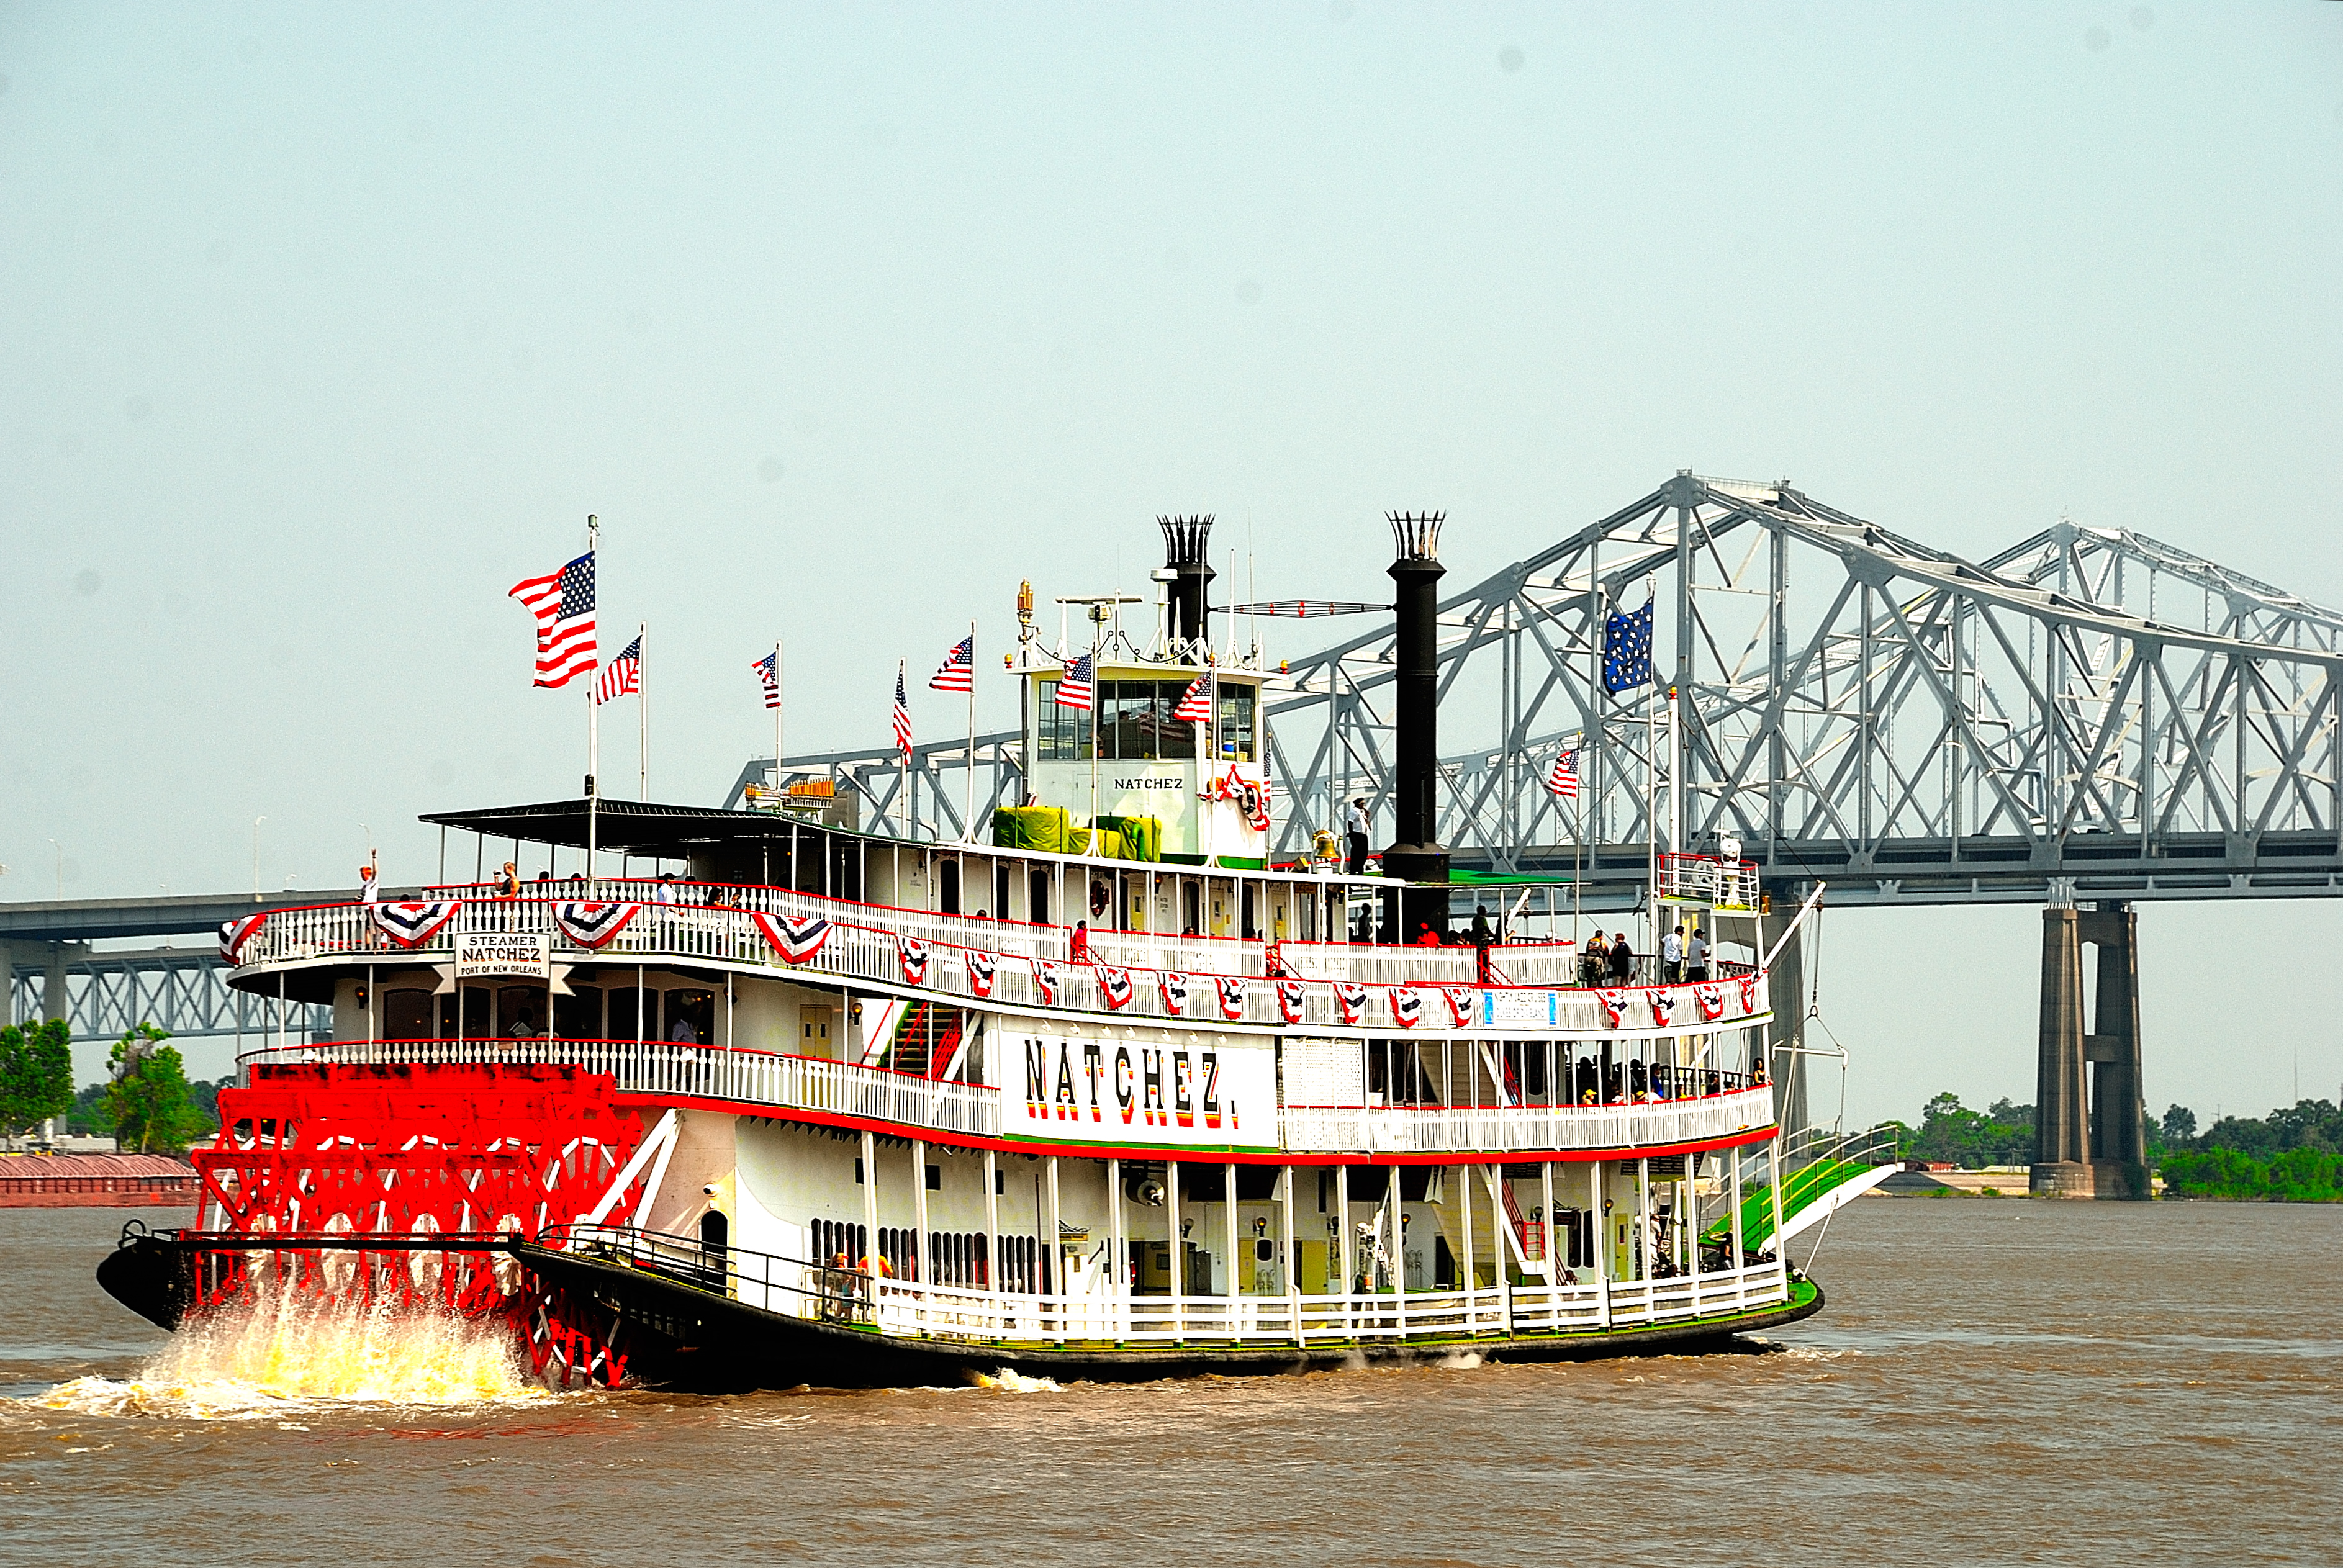 Duke Heitger's Steamboat Stompers (11:30 & 2:30) - Steamboat Natchez